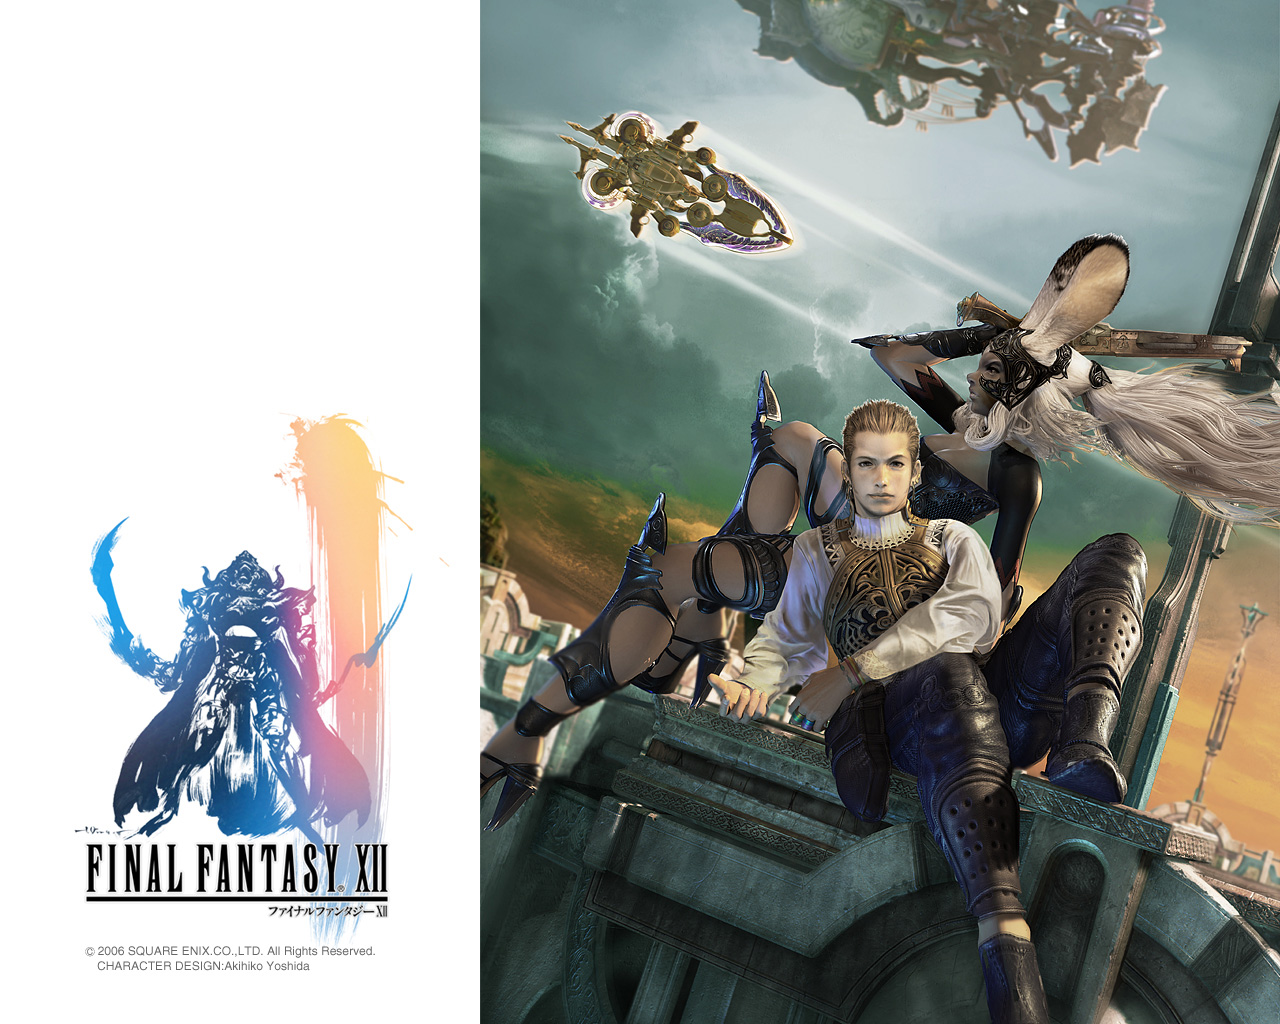 ffxii-balthier-and-fran-wallpaper-1280x1